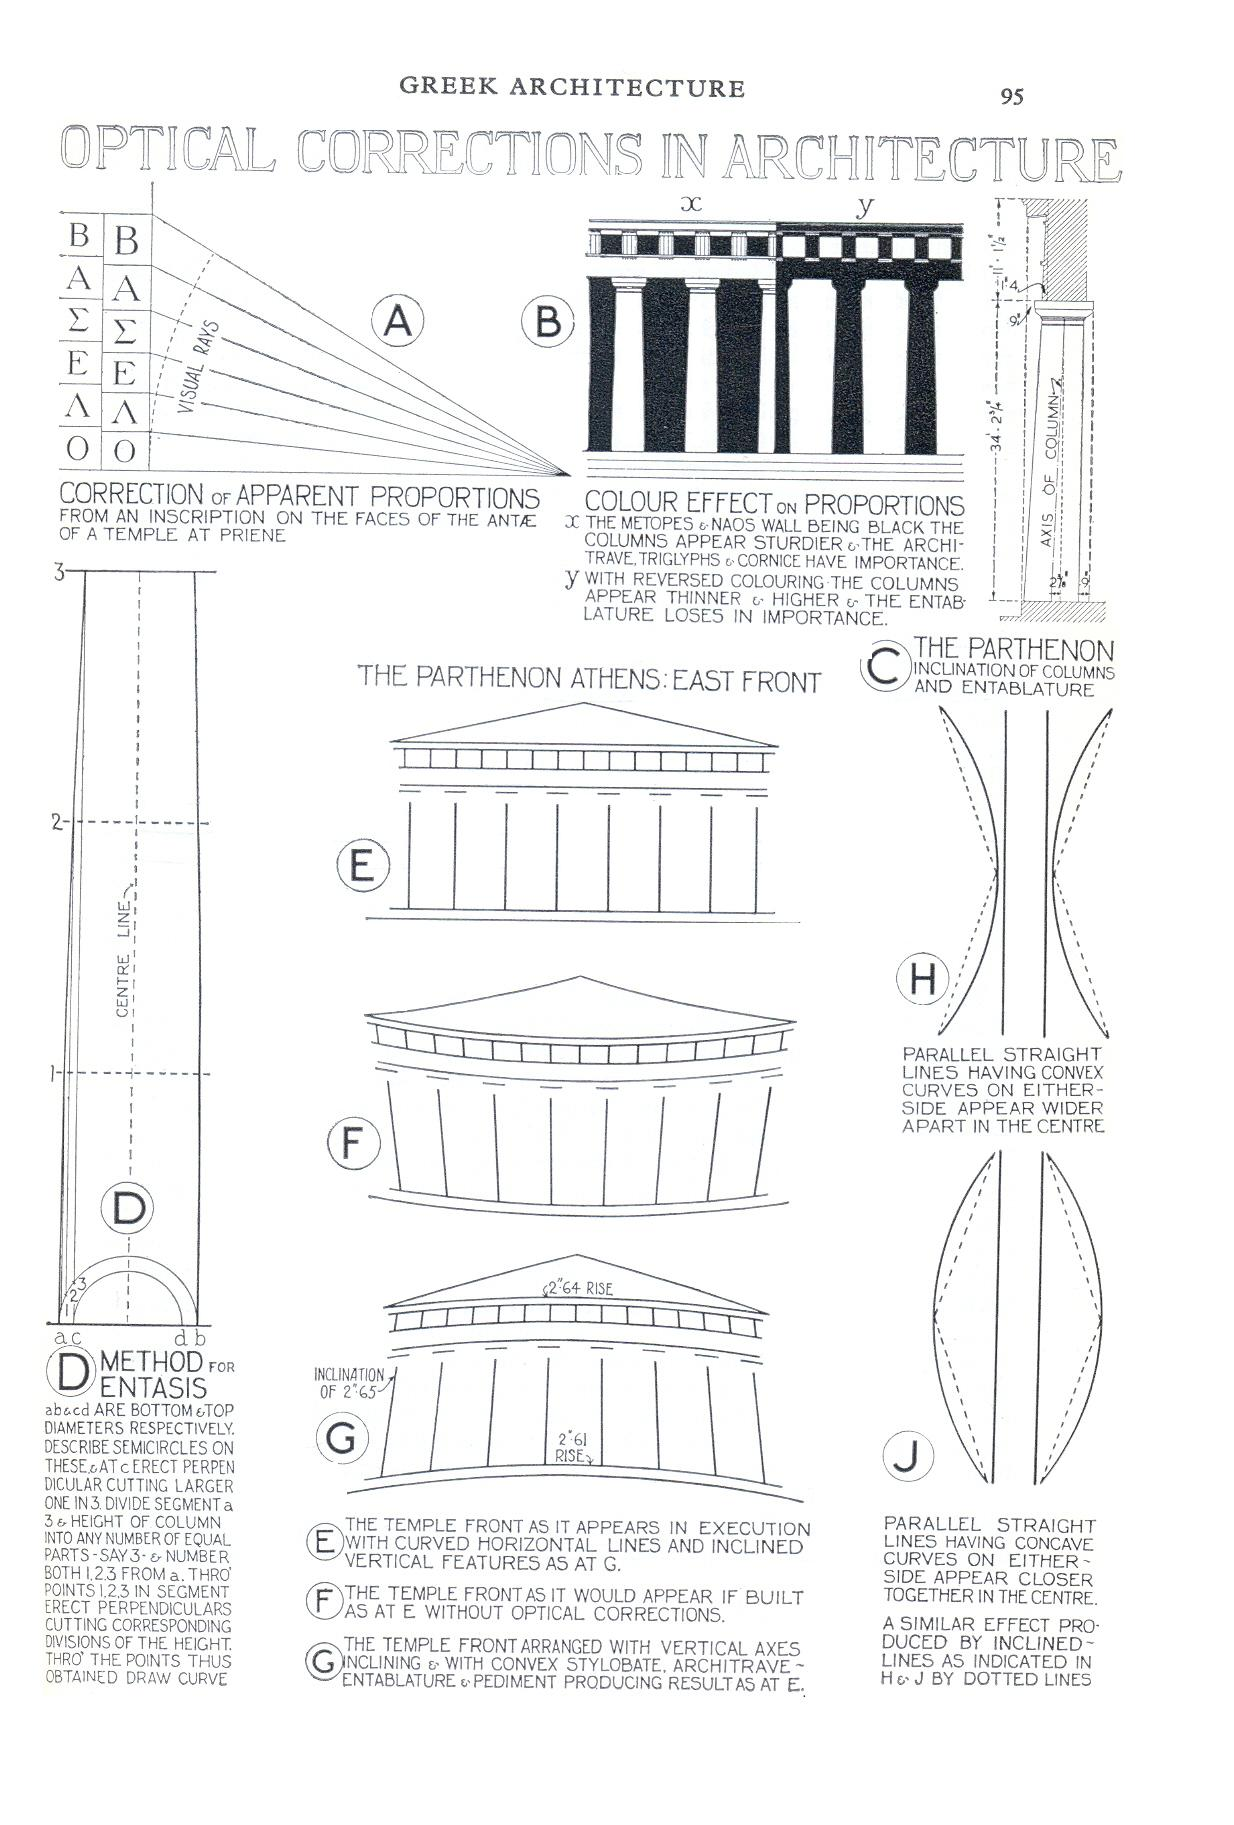 Fileoptical corrections in architecture 95g wikimedia commons fileoptical corrections in architecture 95g ccuart Image collections